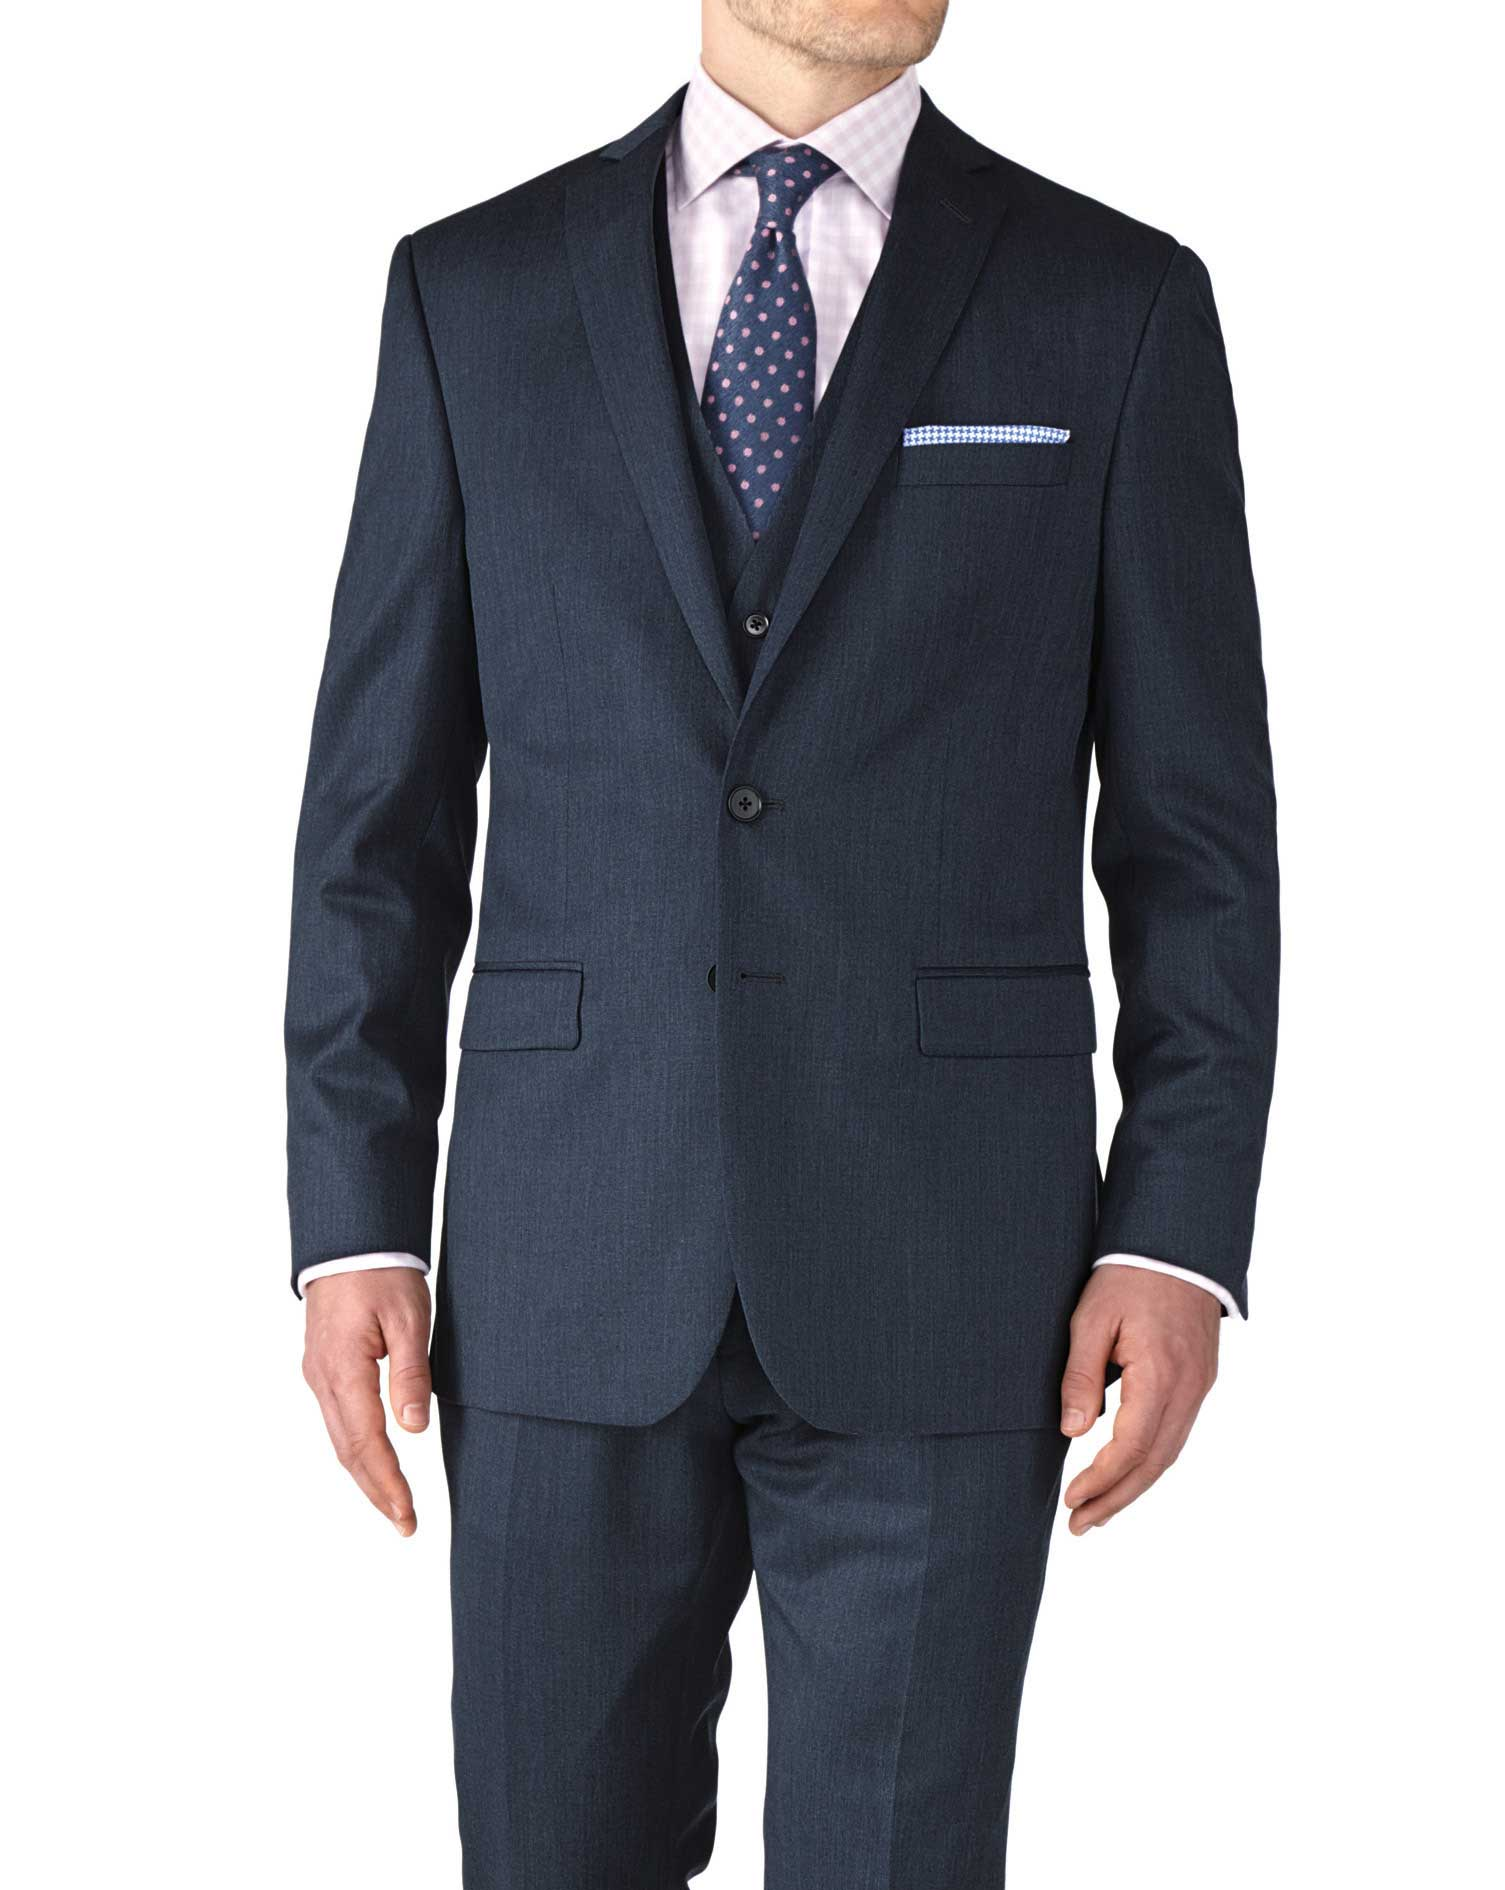 Airforce Blue Slim Fit Twill Business Suit Wool Jacket Size 48 Long by Charles Tyrwhitt